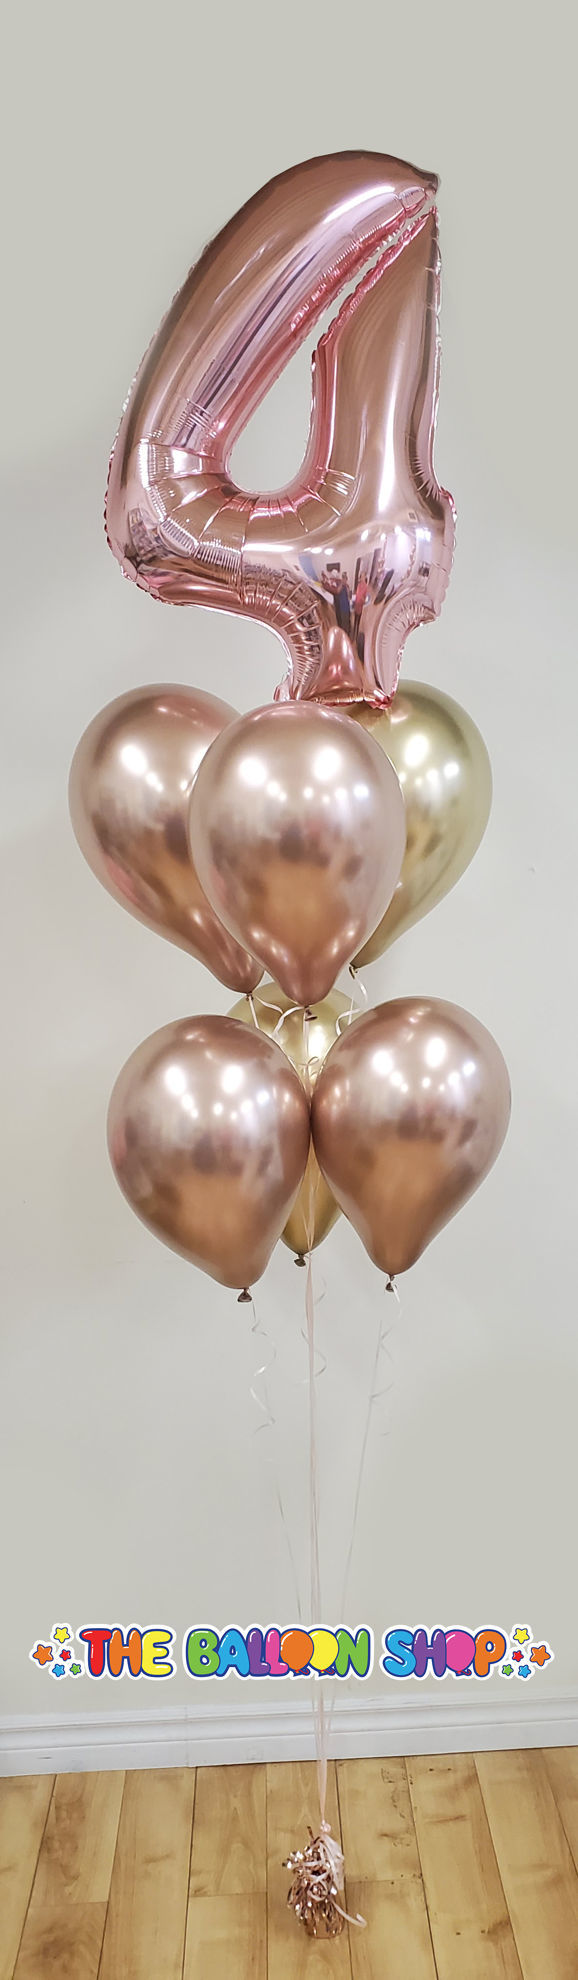 Picture of Custom Chrome Balloon Bouquet with Number